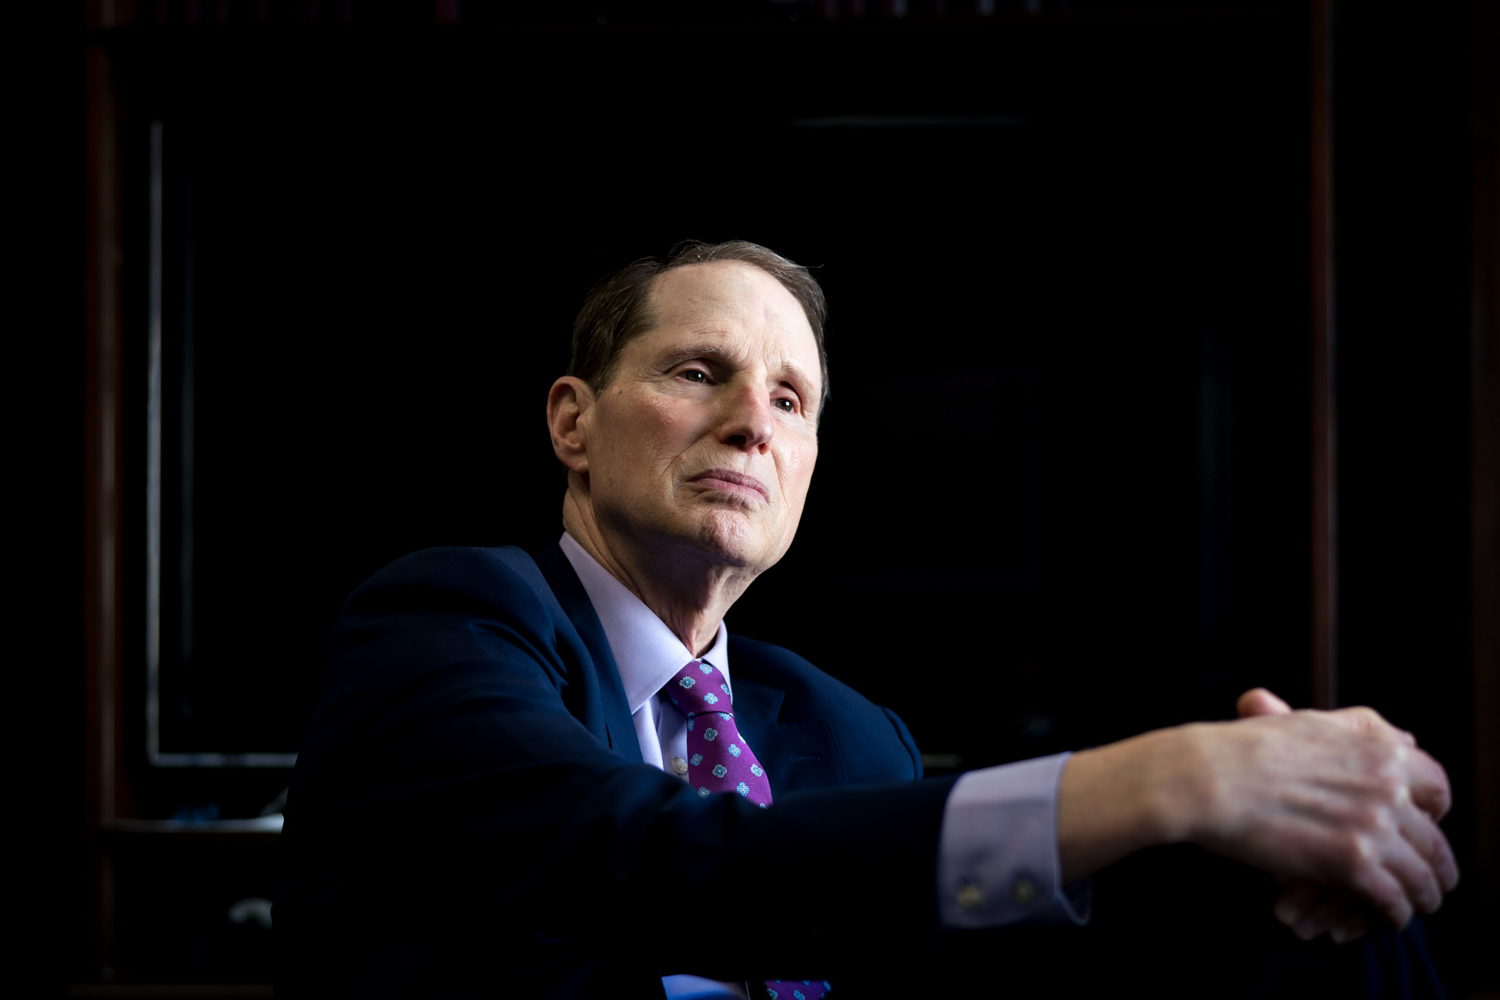 Senator Ron Wyden (D-OR) listens during an interview in his office on Capitol Hill in Washington, DC in July of 2018. (Photo for The Verge)